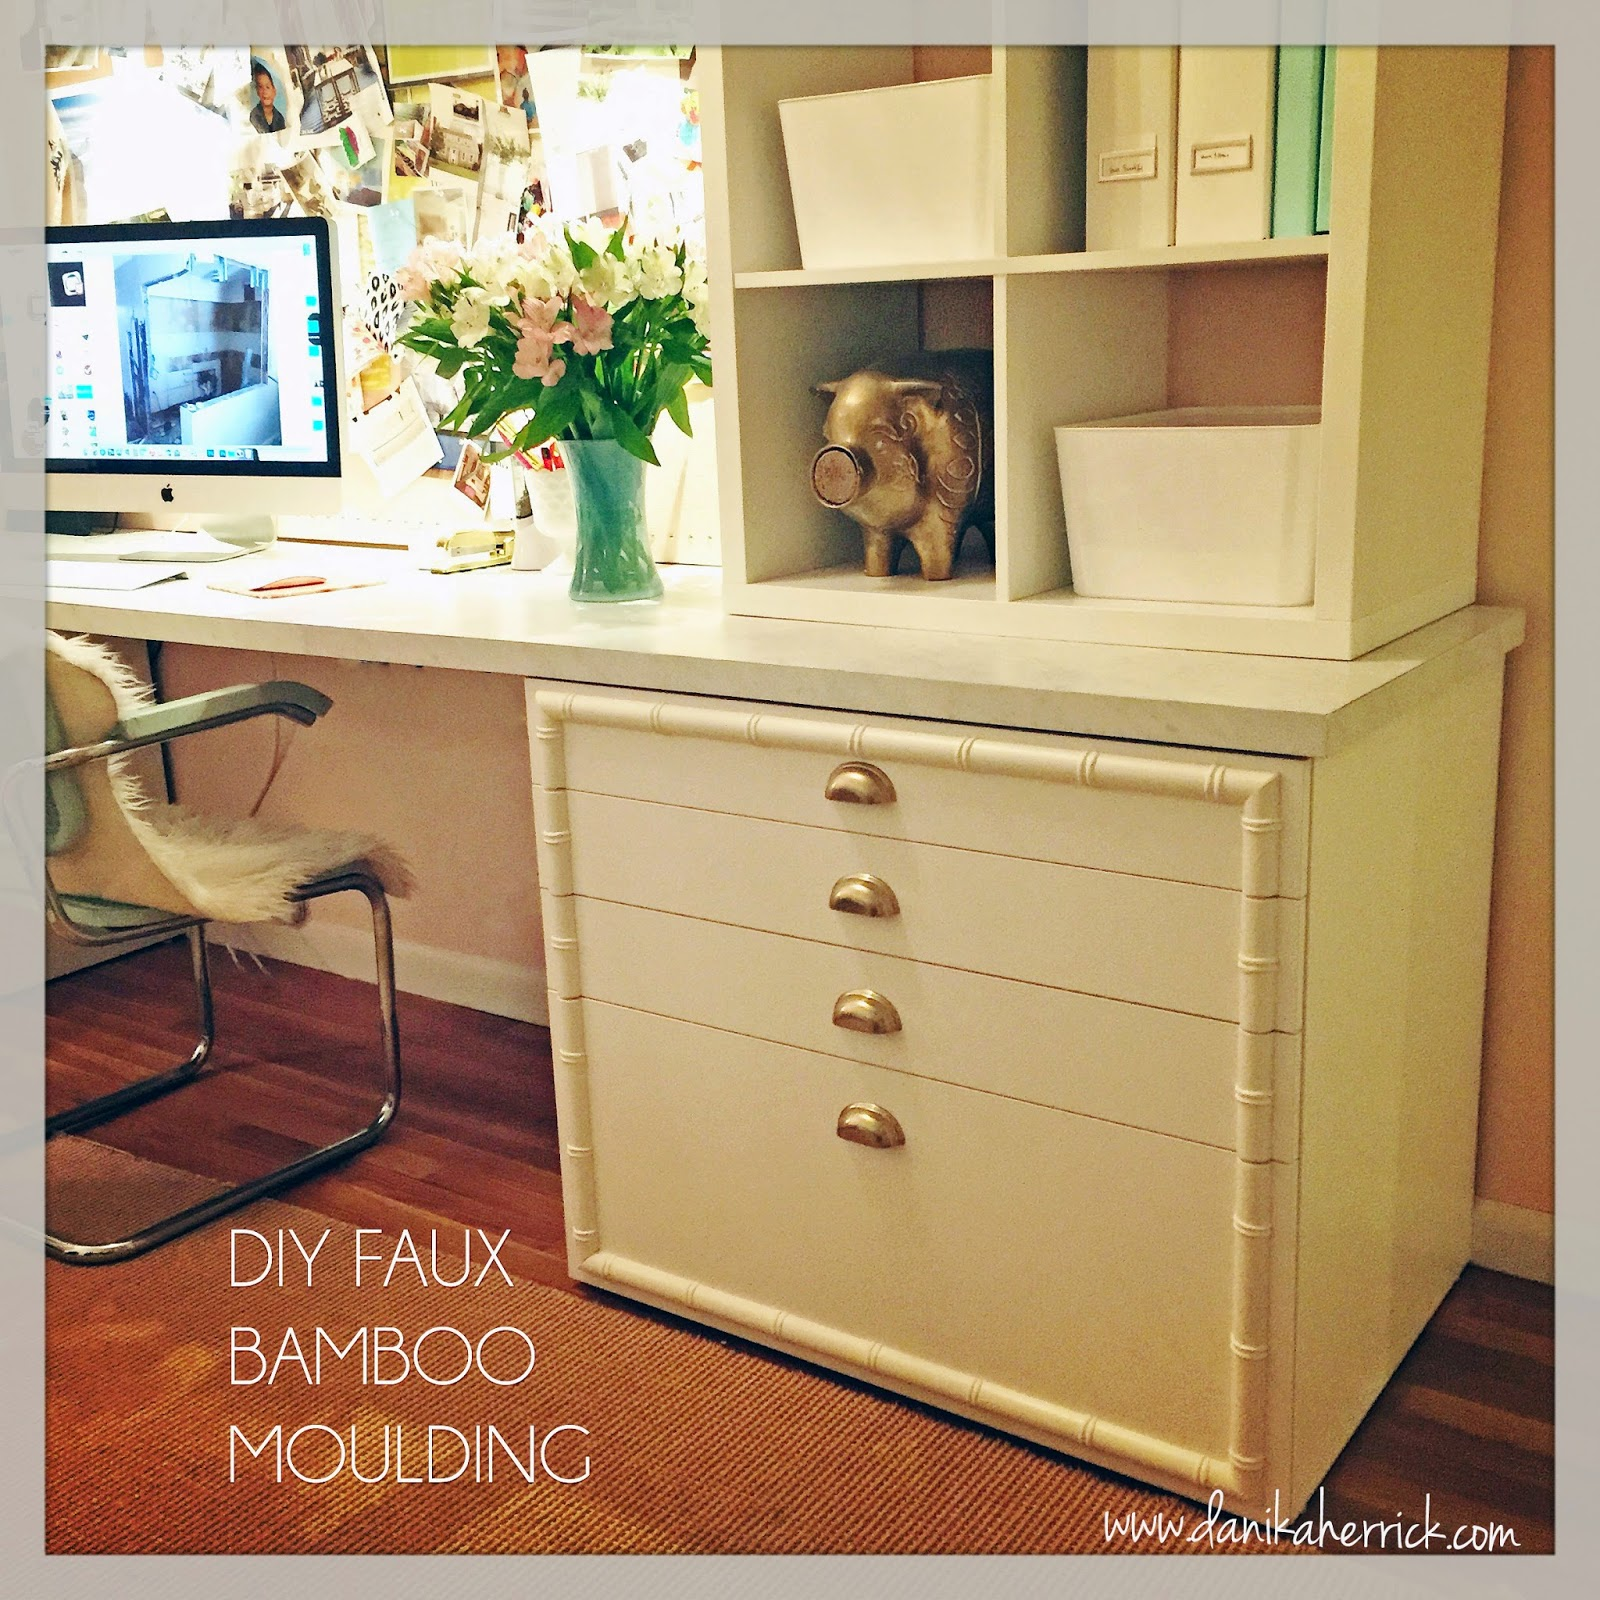 Base Cabinets For Desk Gorgeous Shiny Things Diy Faux Bamboo Moulding